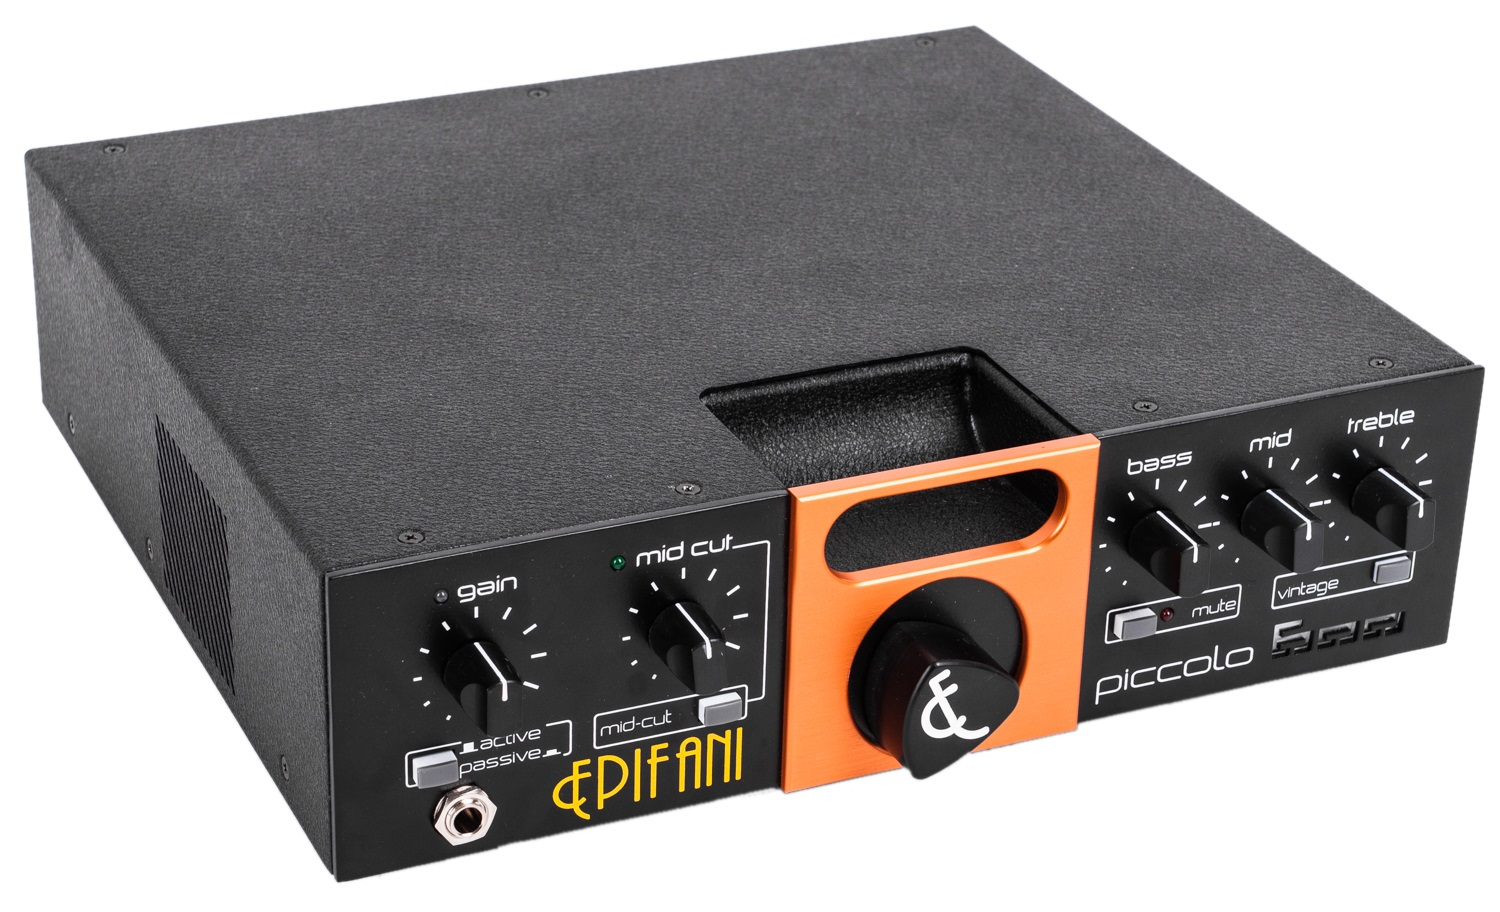 Epifani Piccolo 600 + 2x10 Box